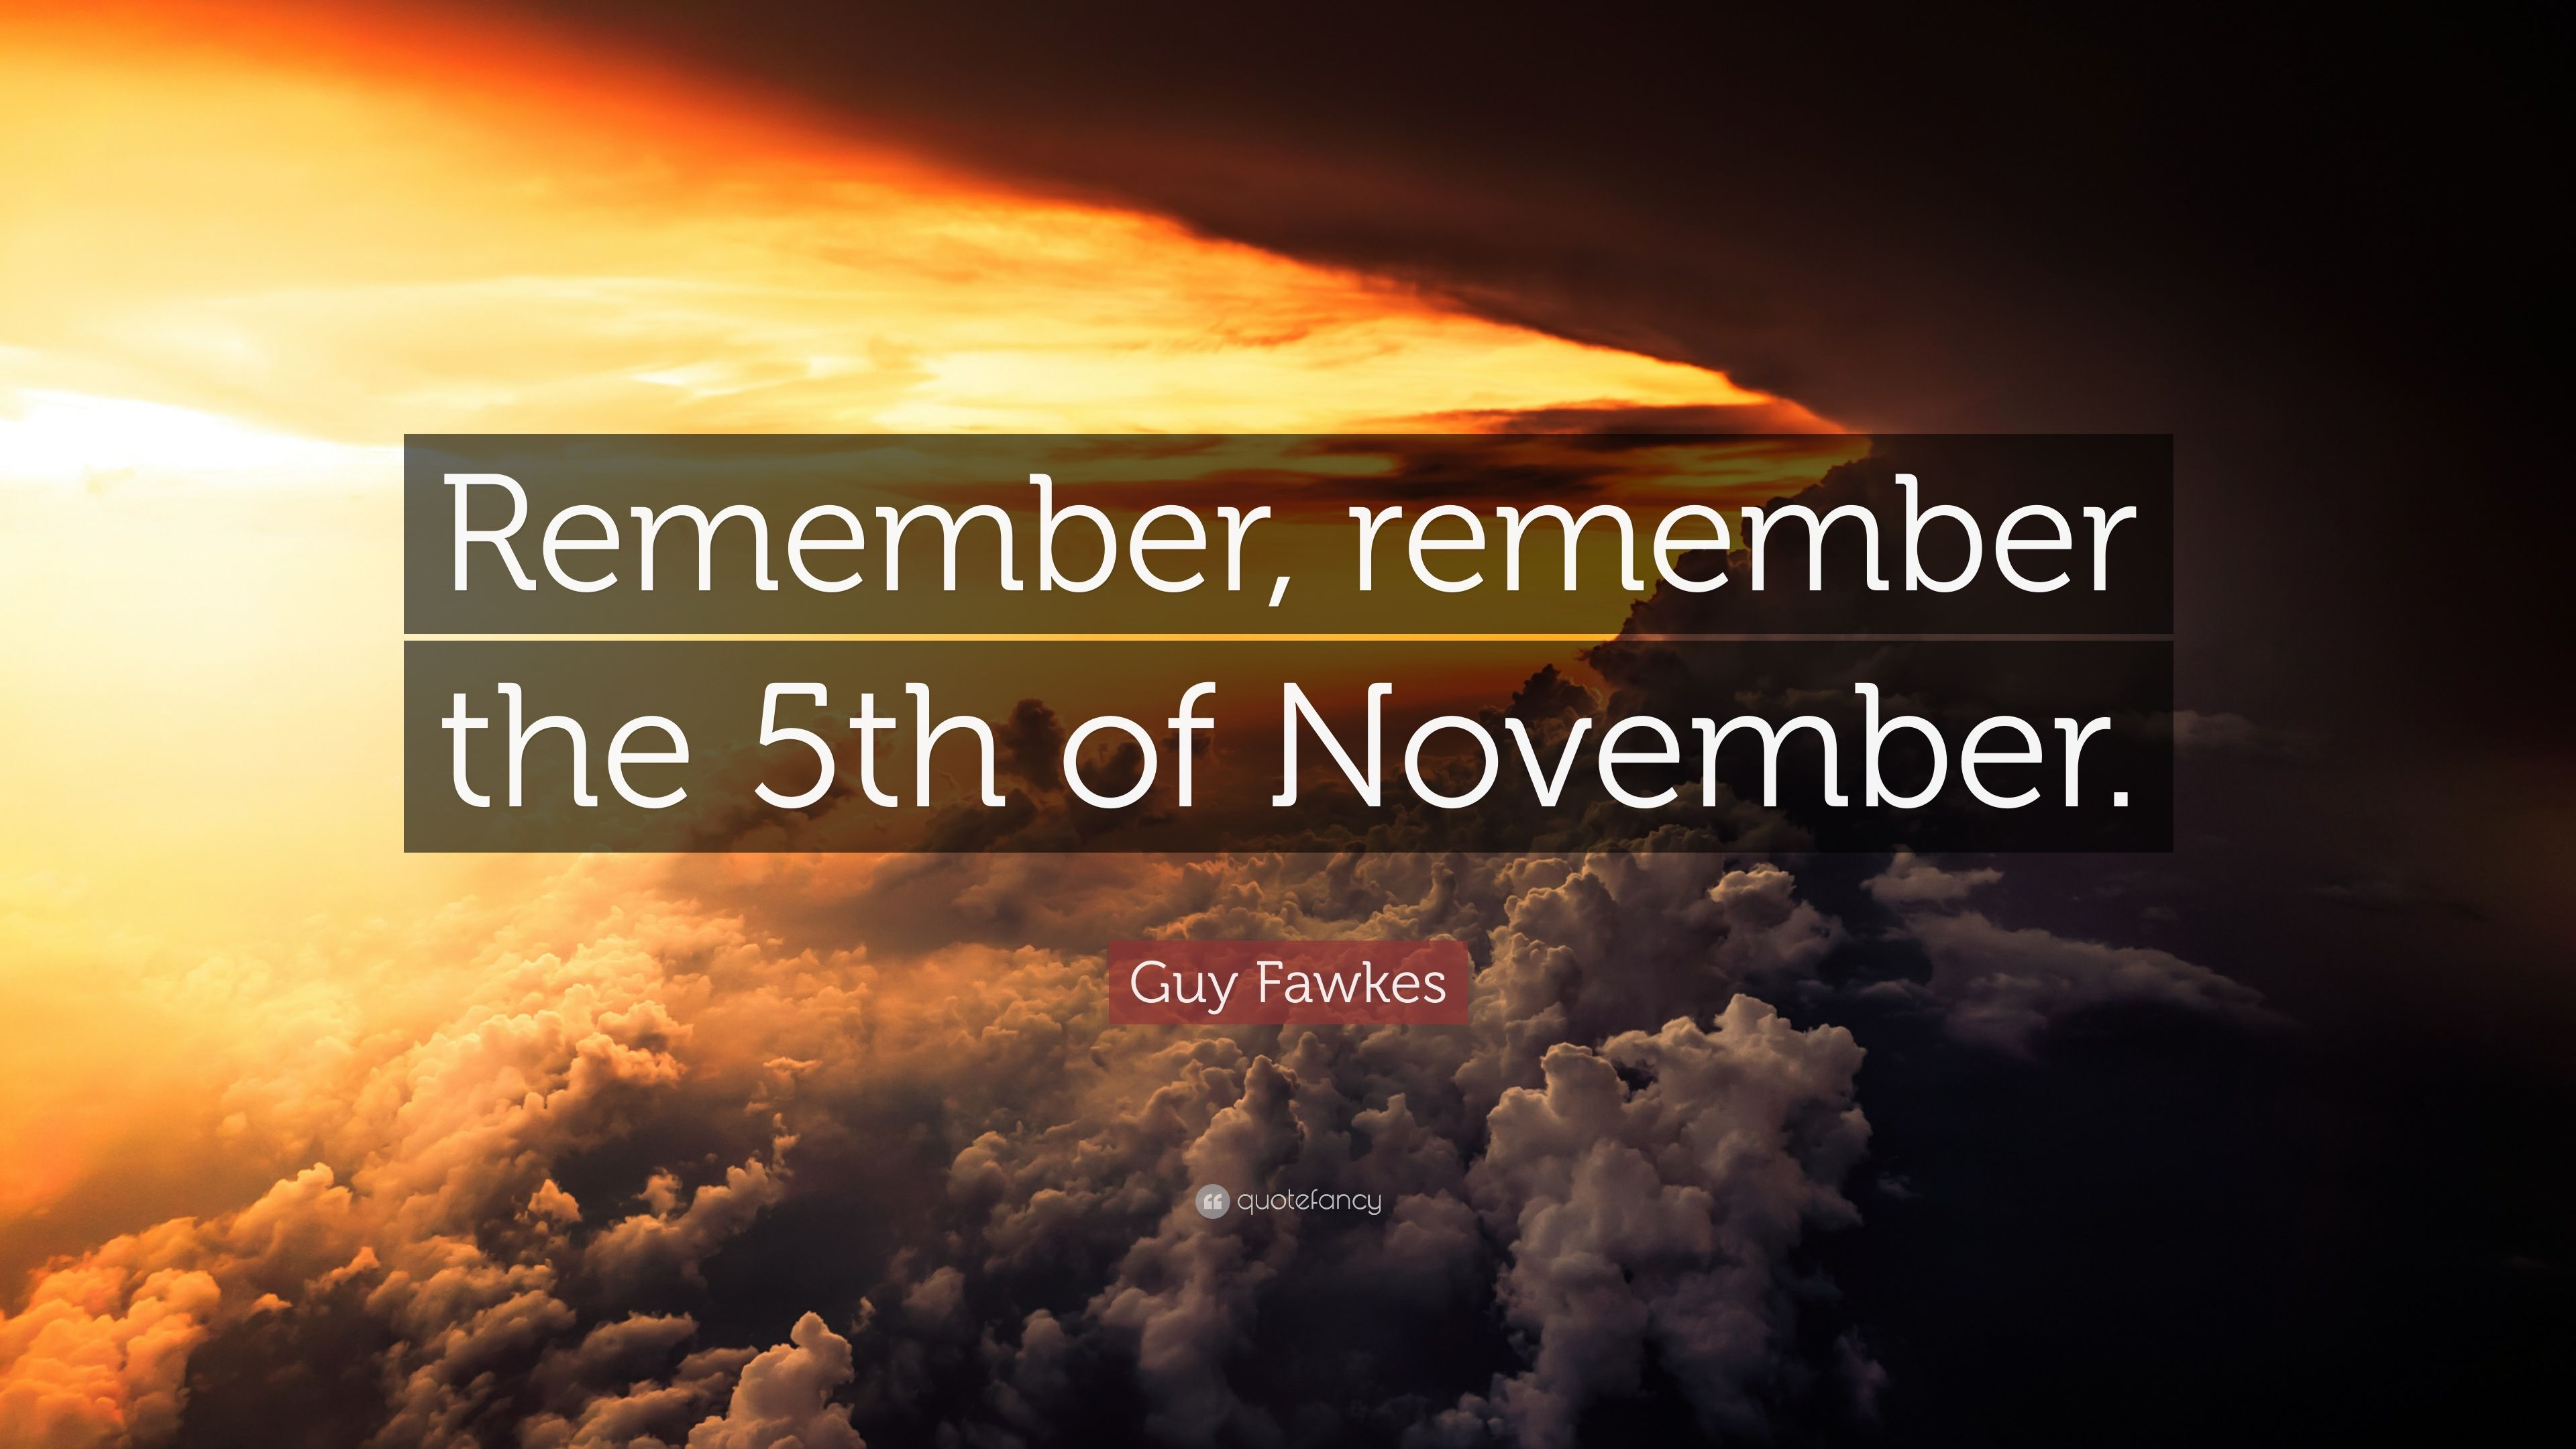 3840x2160 Guy Fawkes Quotes (2 wallpapers) - Quotefancy